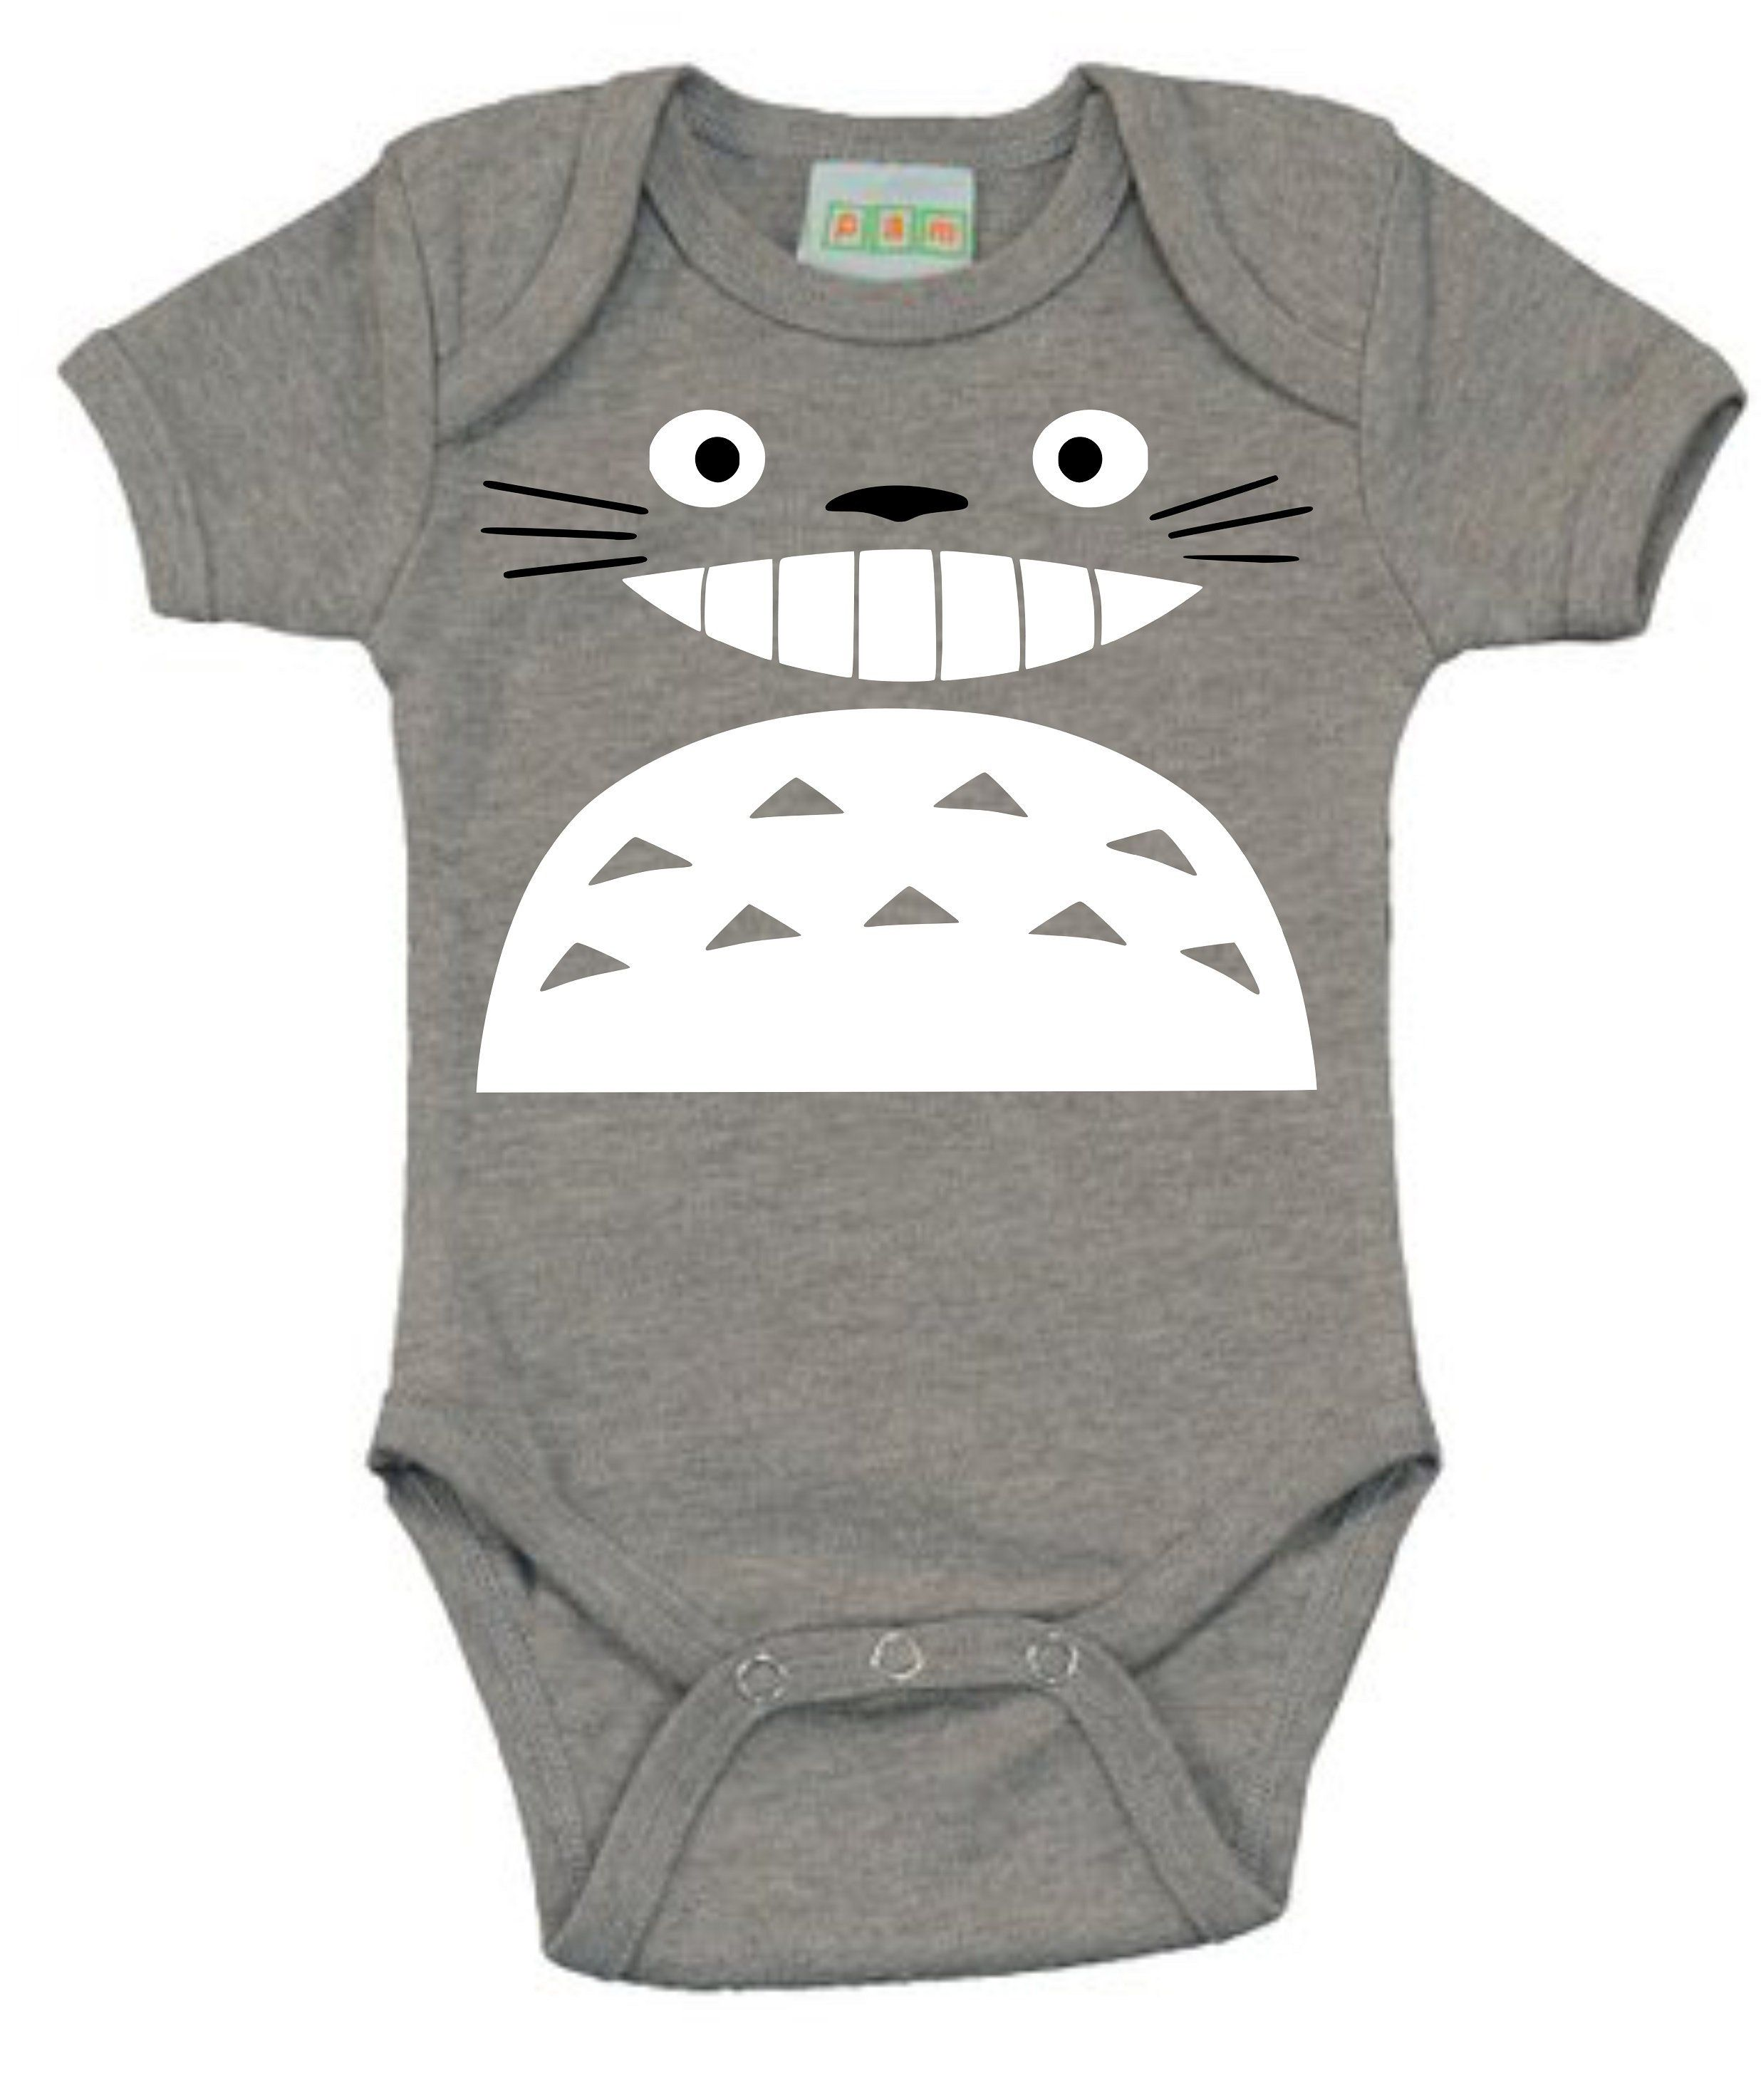 162f746fe Totoro baby onesie or kid's shirt | Babies and Kids | Kids shirts ...